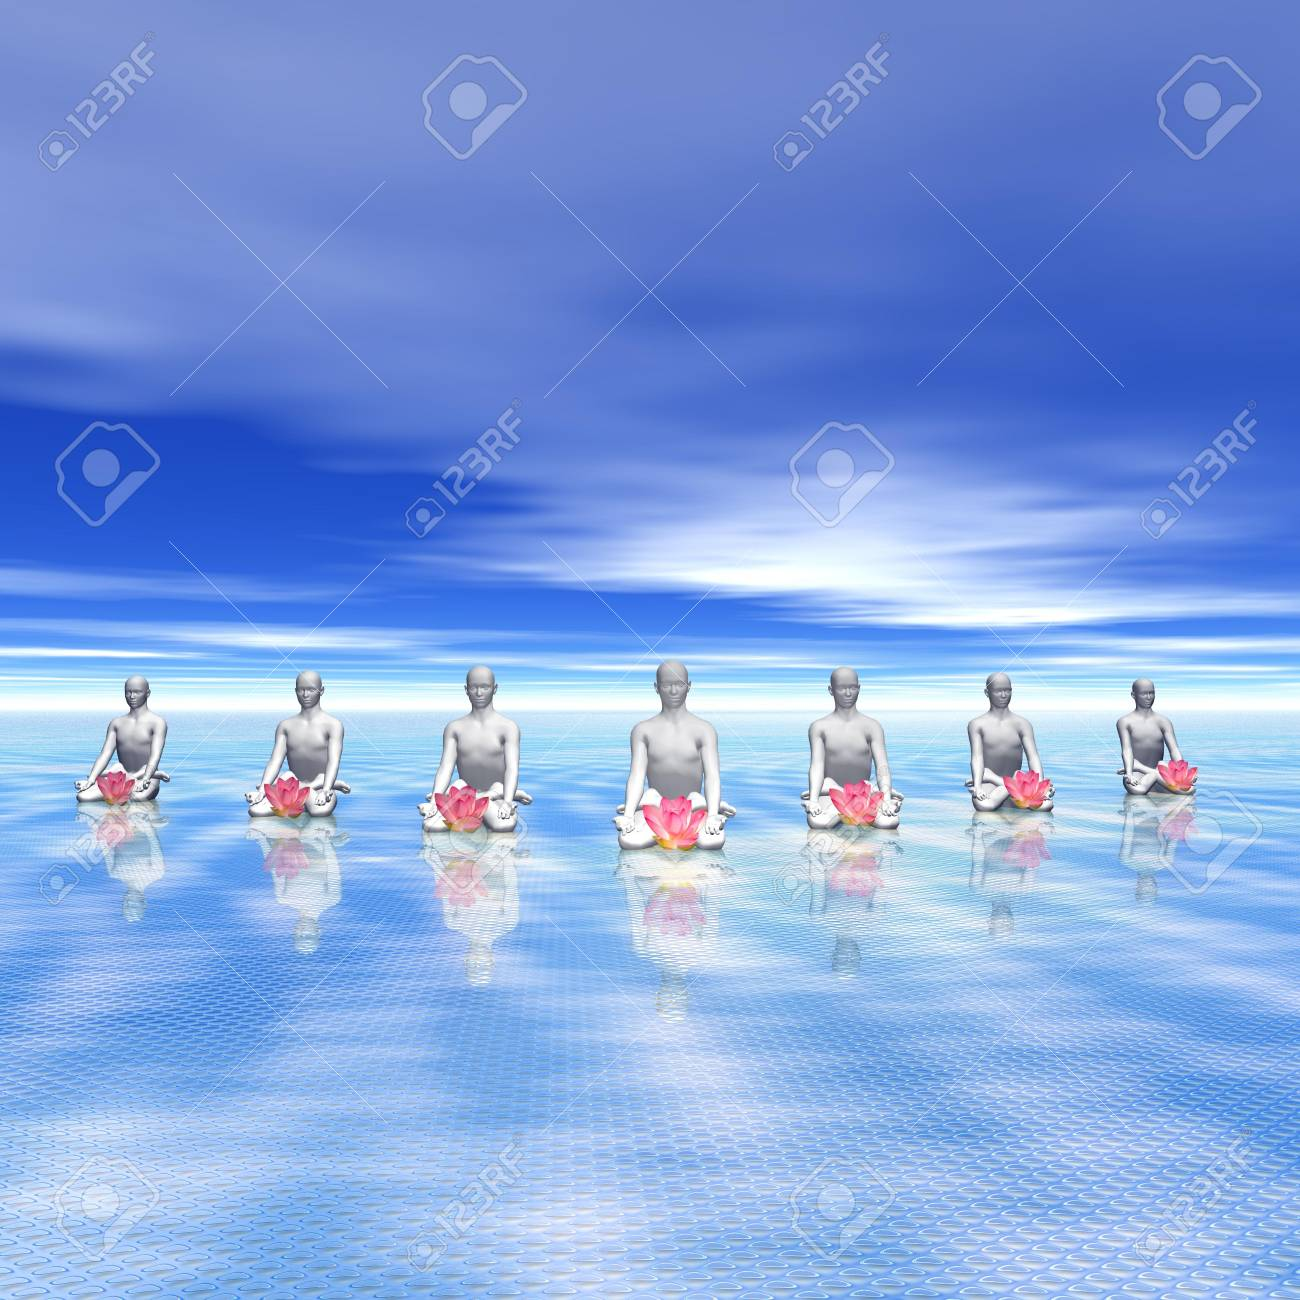 Meditating men in front of a pink lily flower in blue background Stock Photo - 12619135